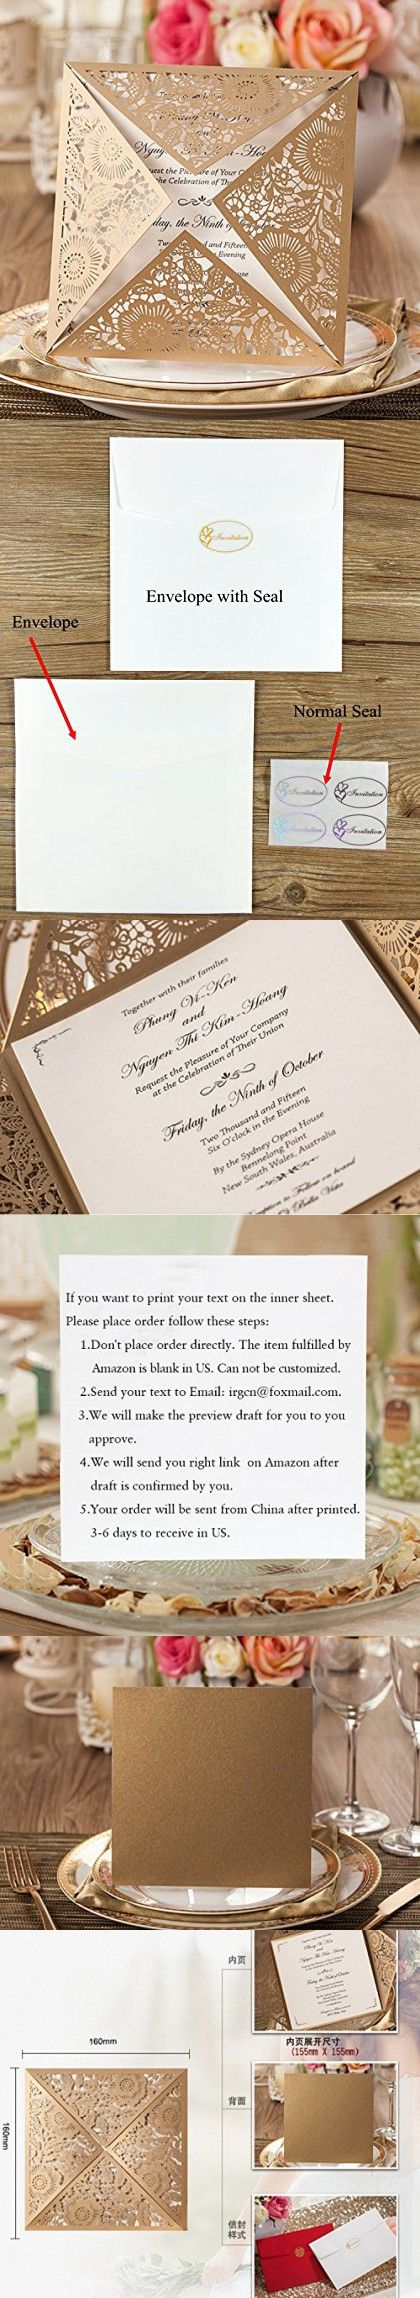 wedding invitation sample by email%0A Doris Home wedding invitations wedding invites invitations cards wedding  invitations kit Doris Home Square Gold Laser